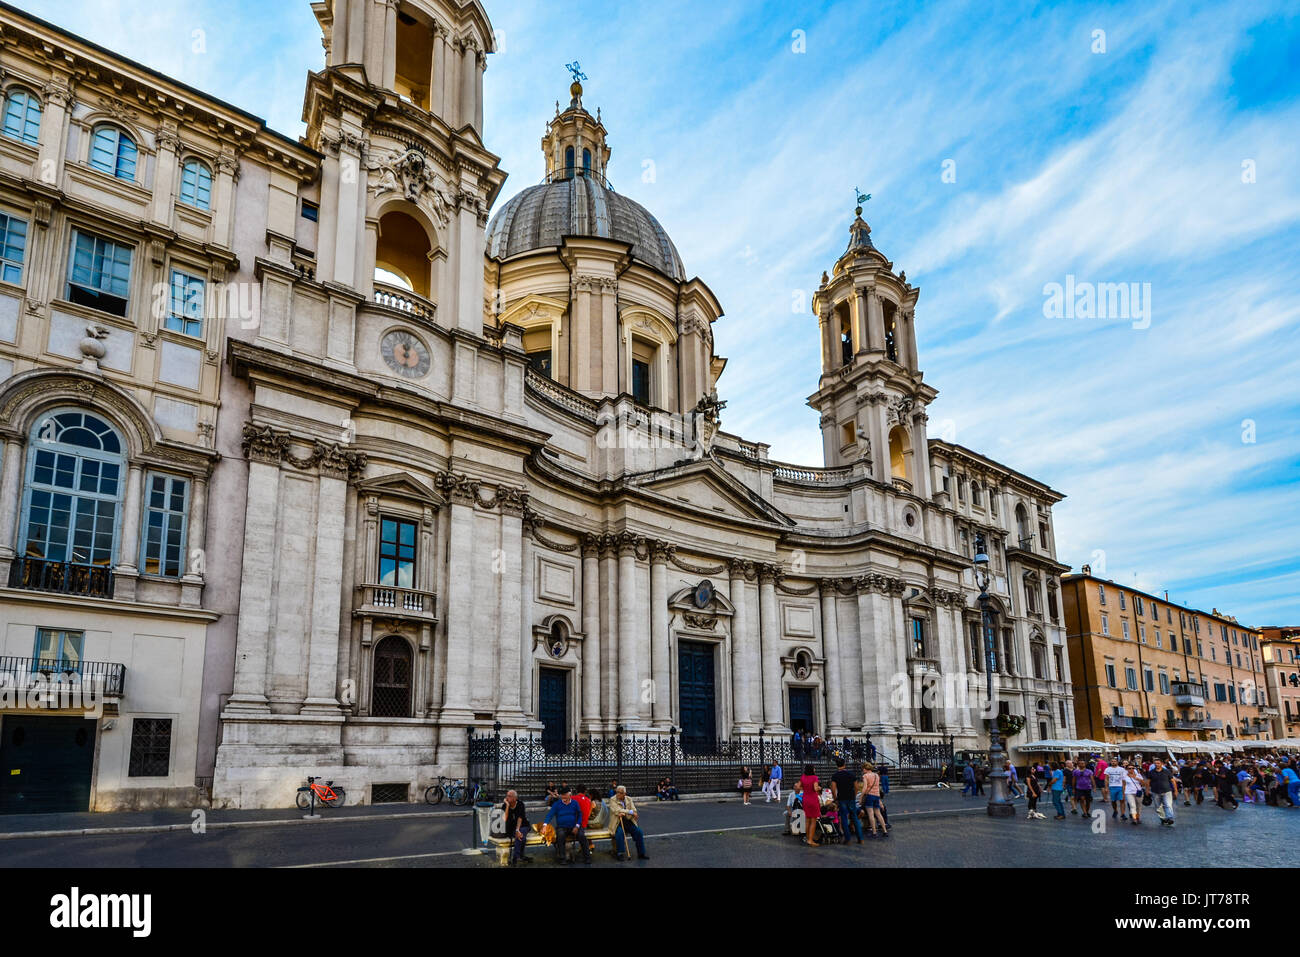 The exterior facade of the baroque Sant'Agnese in Agone cathedral in the Piazza Navona in Rome Italy on a sunny morning in late summer - Stock Image